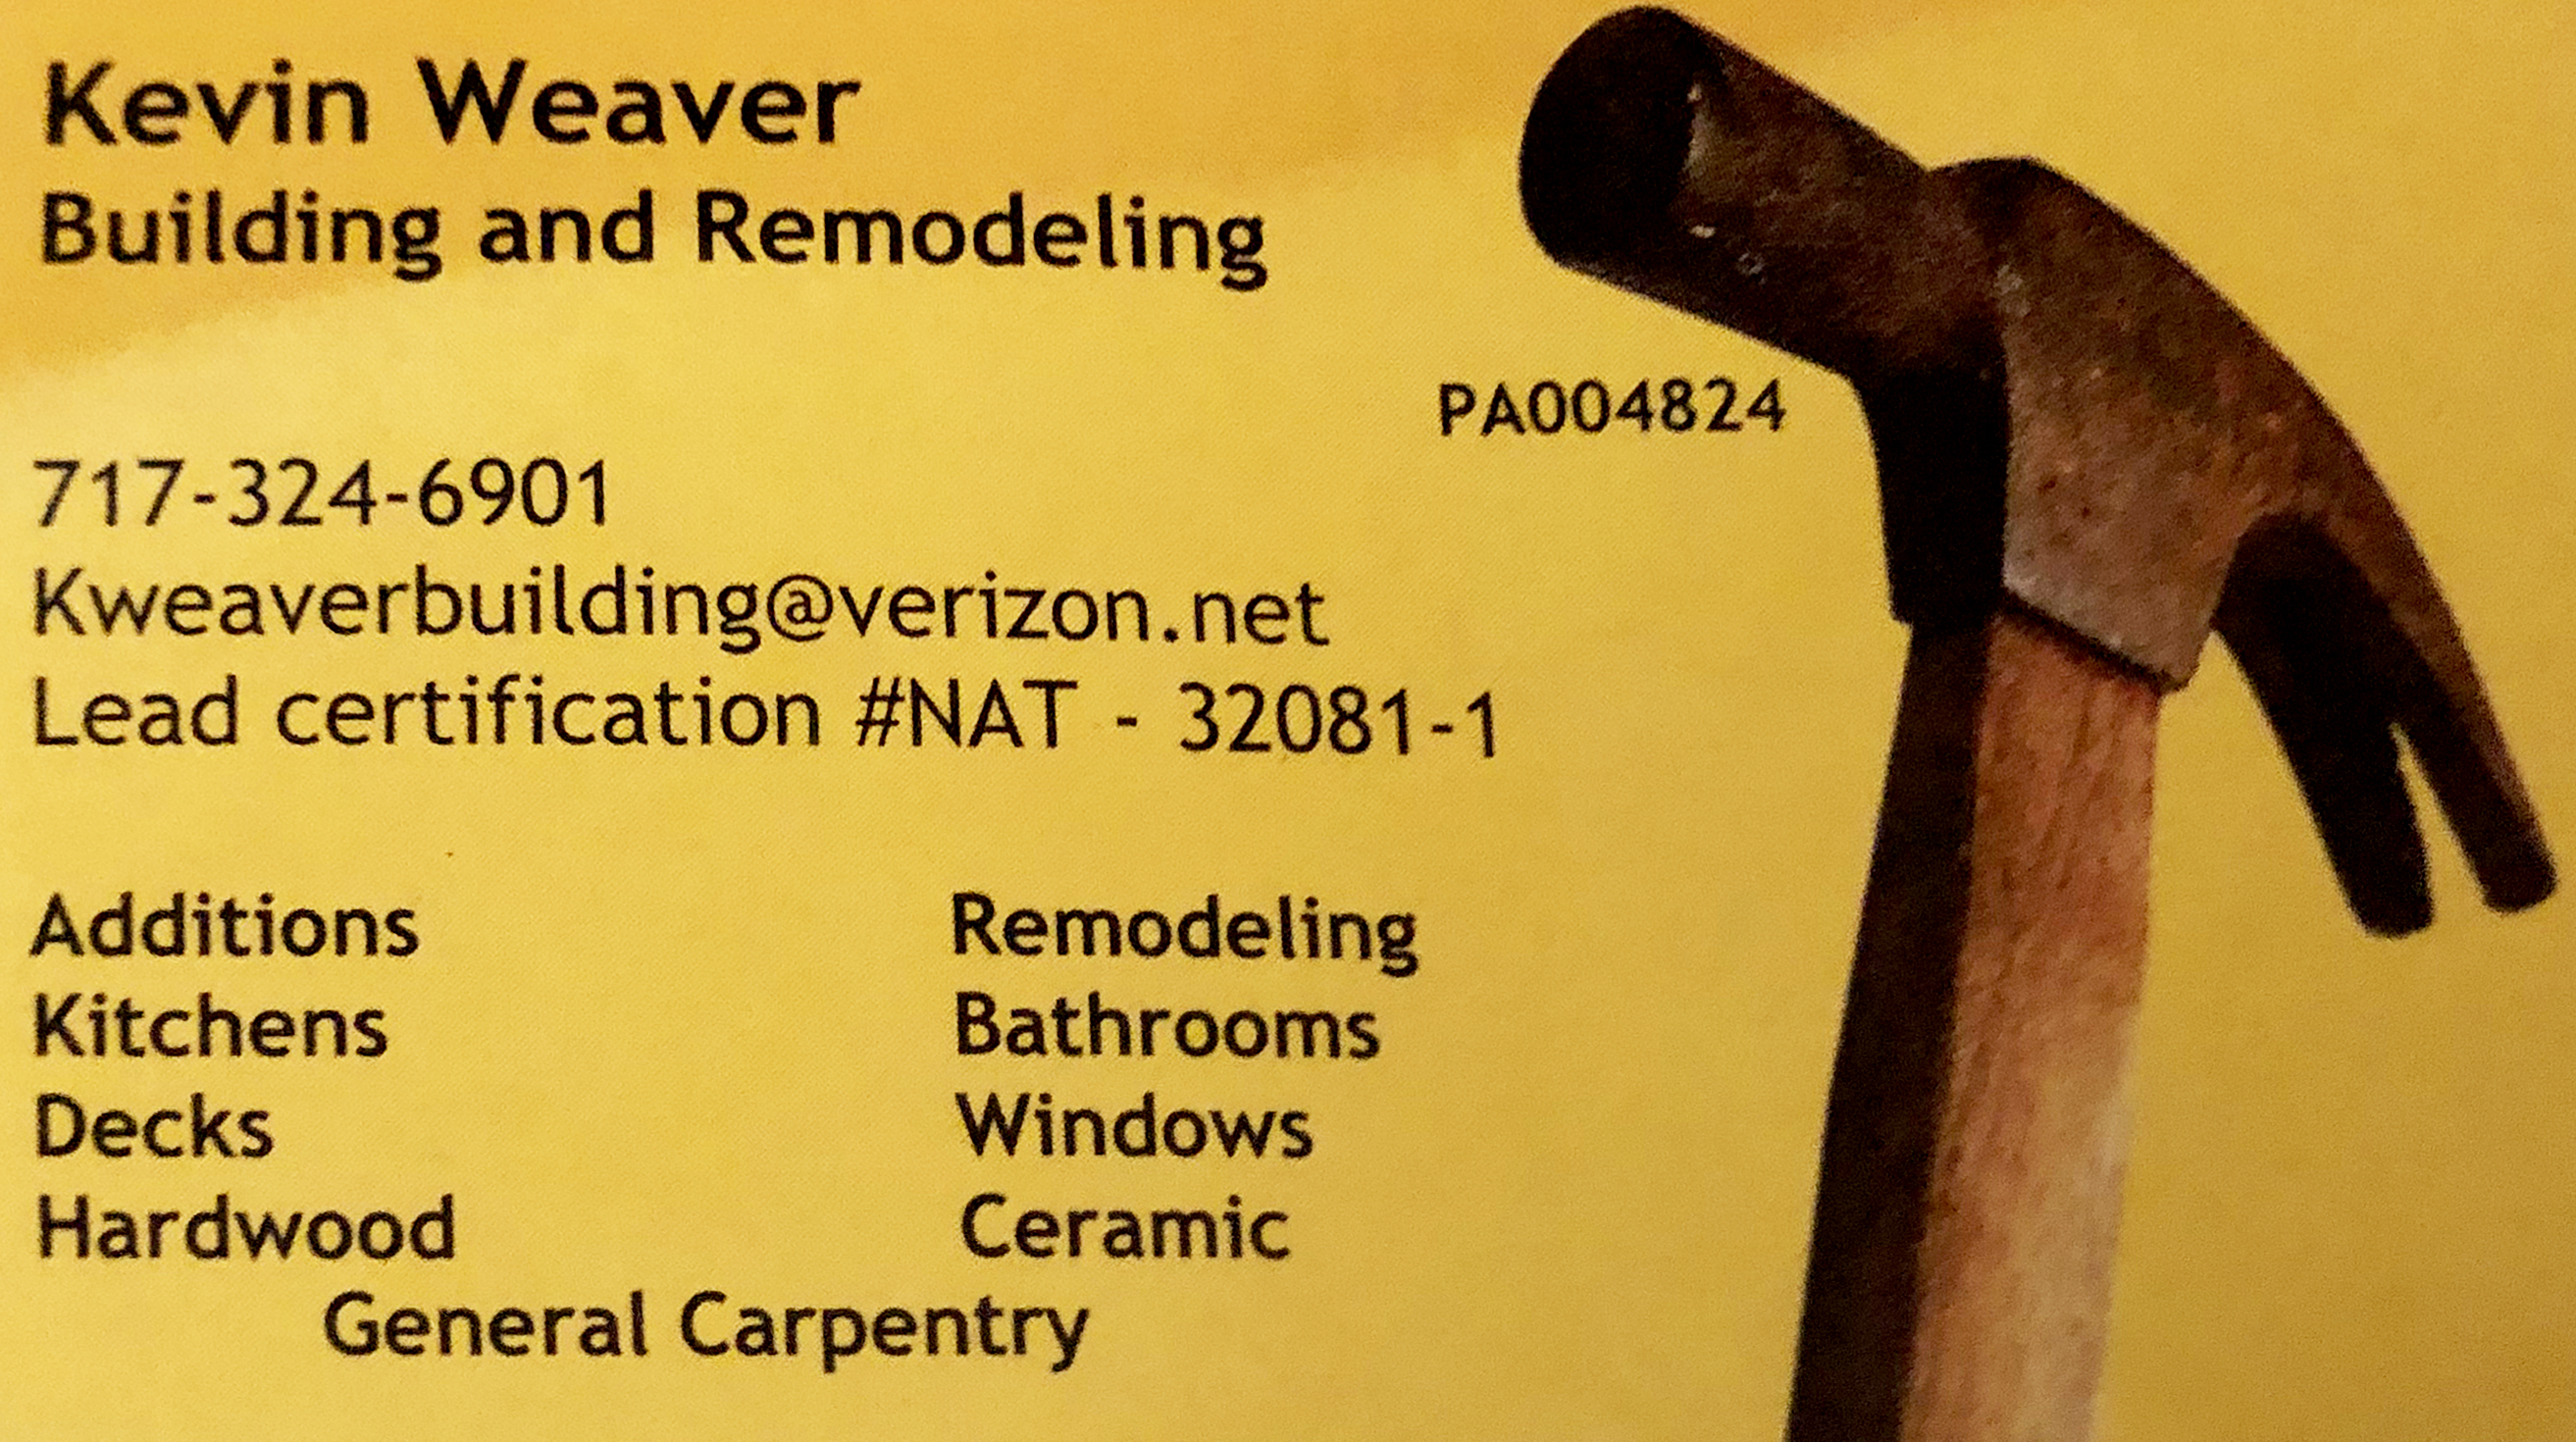 Kevin Weaver Building and Remodeling